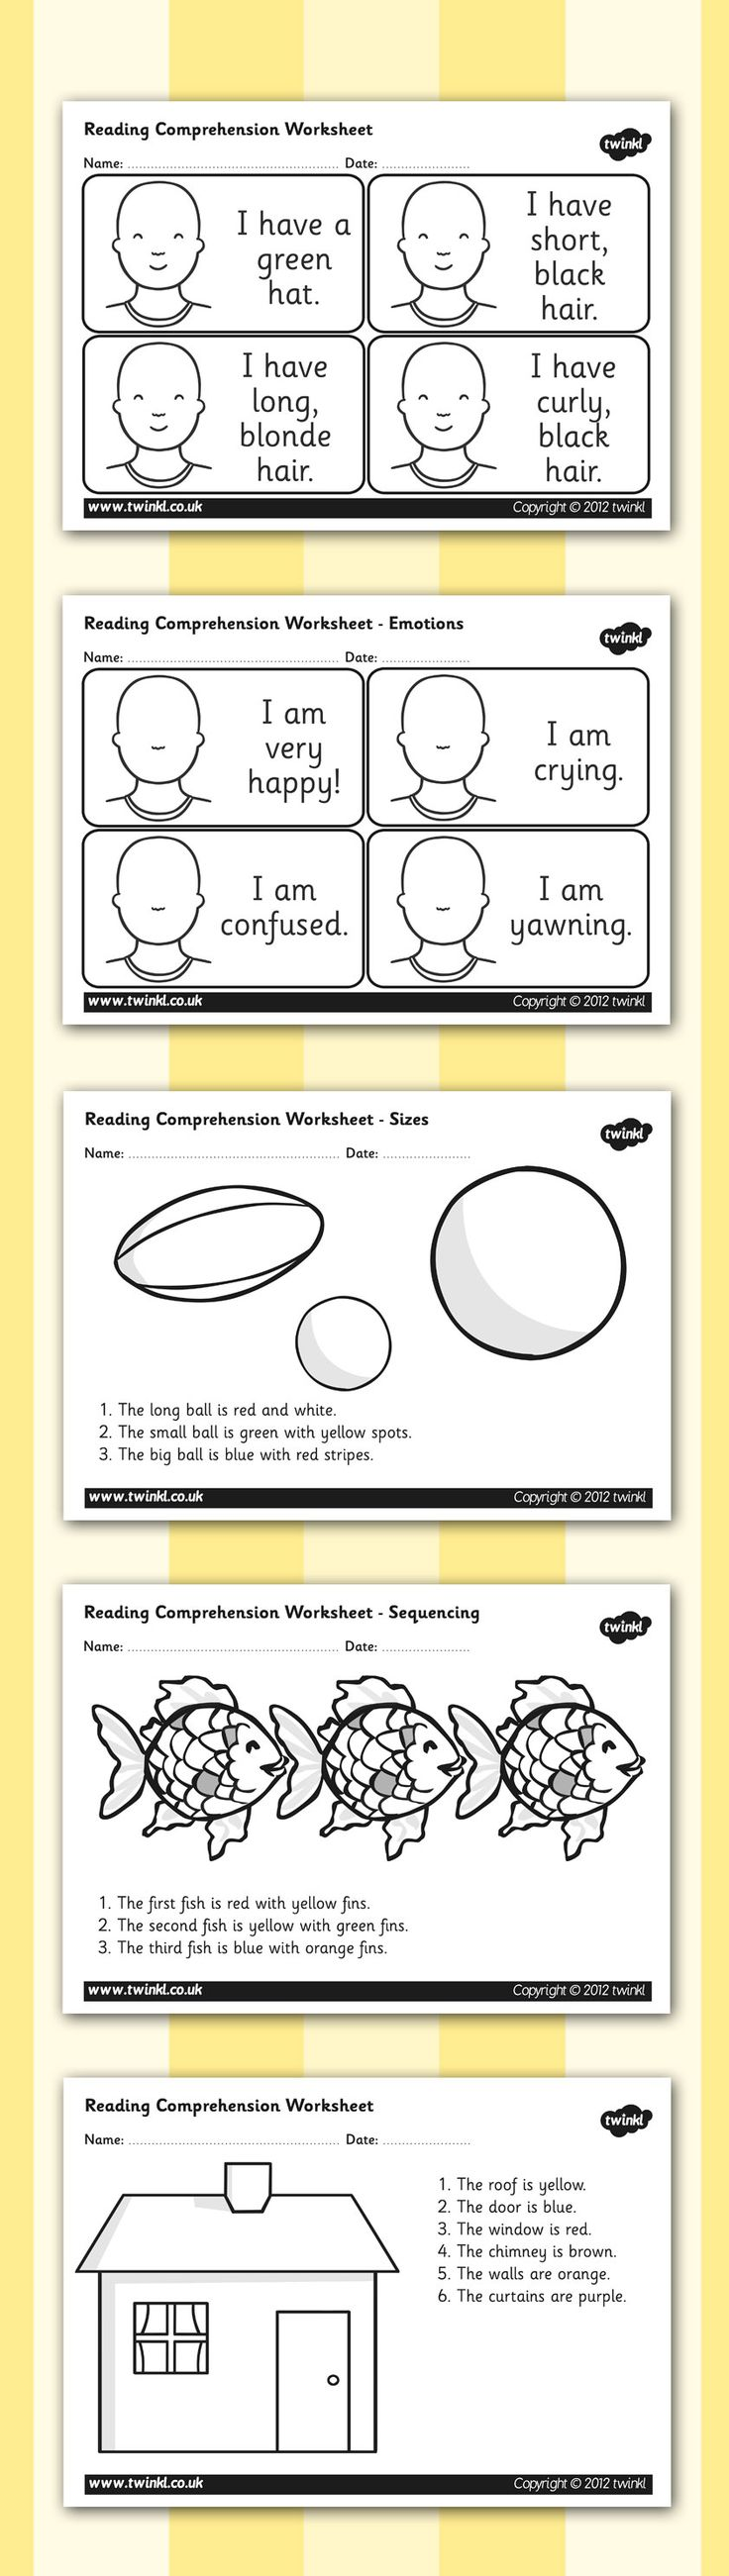 Worksheets 4th Grade Reading Comprehension Worksheets best 25 comprehension worksheets ideas on pinterest free twinkl resources reading higher ability printable for primary